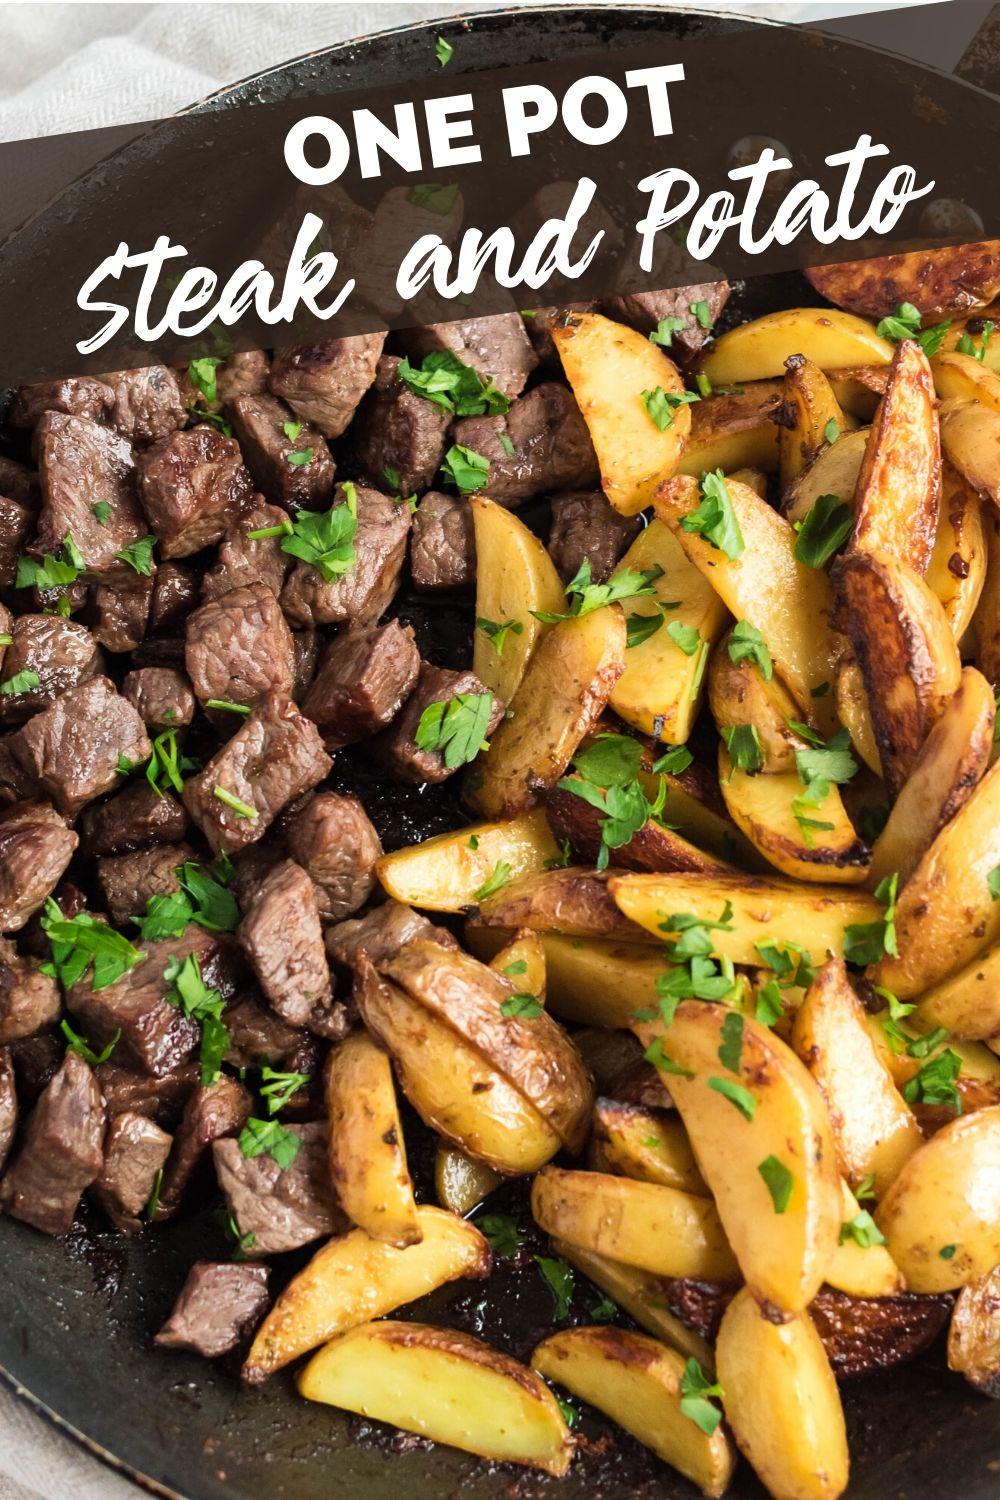 One Pot Steak and Potatoes recipe from Family Fresh Meals via @familyfresh